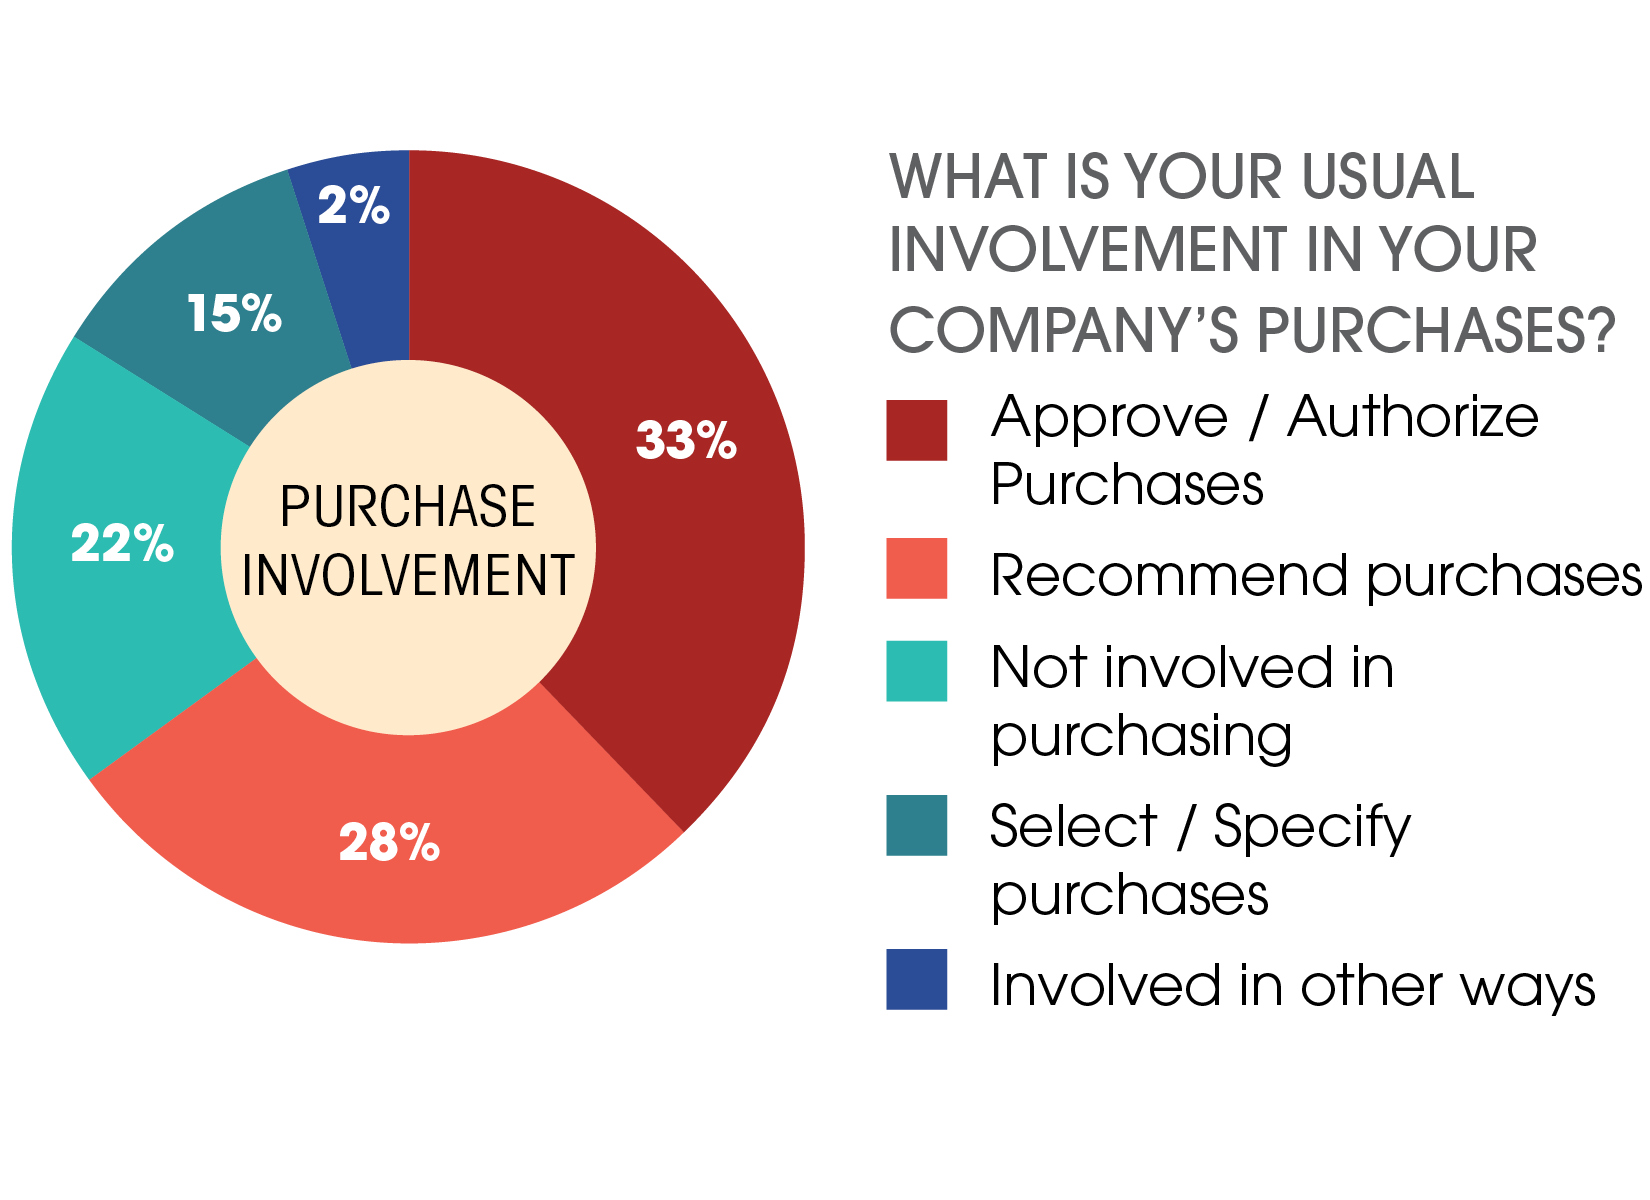 Purchase Involvement